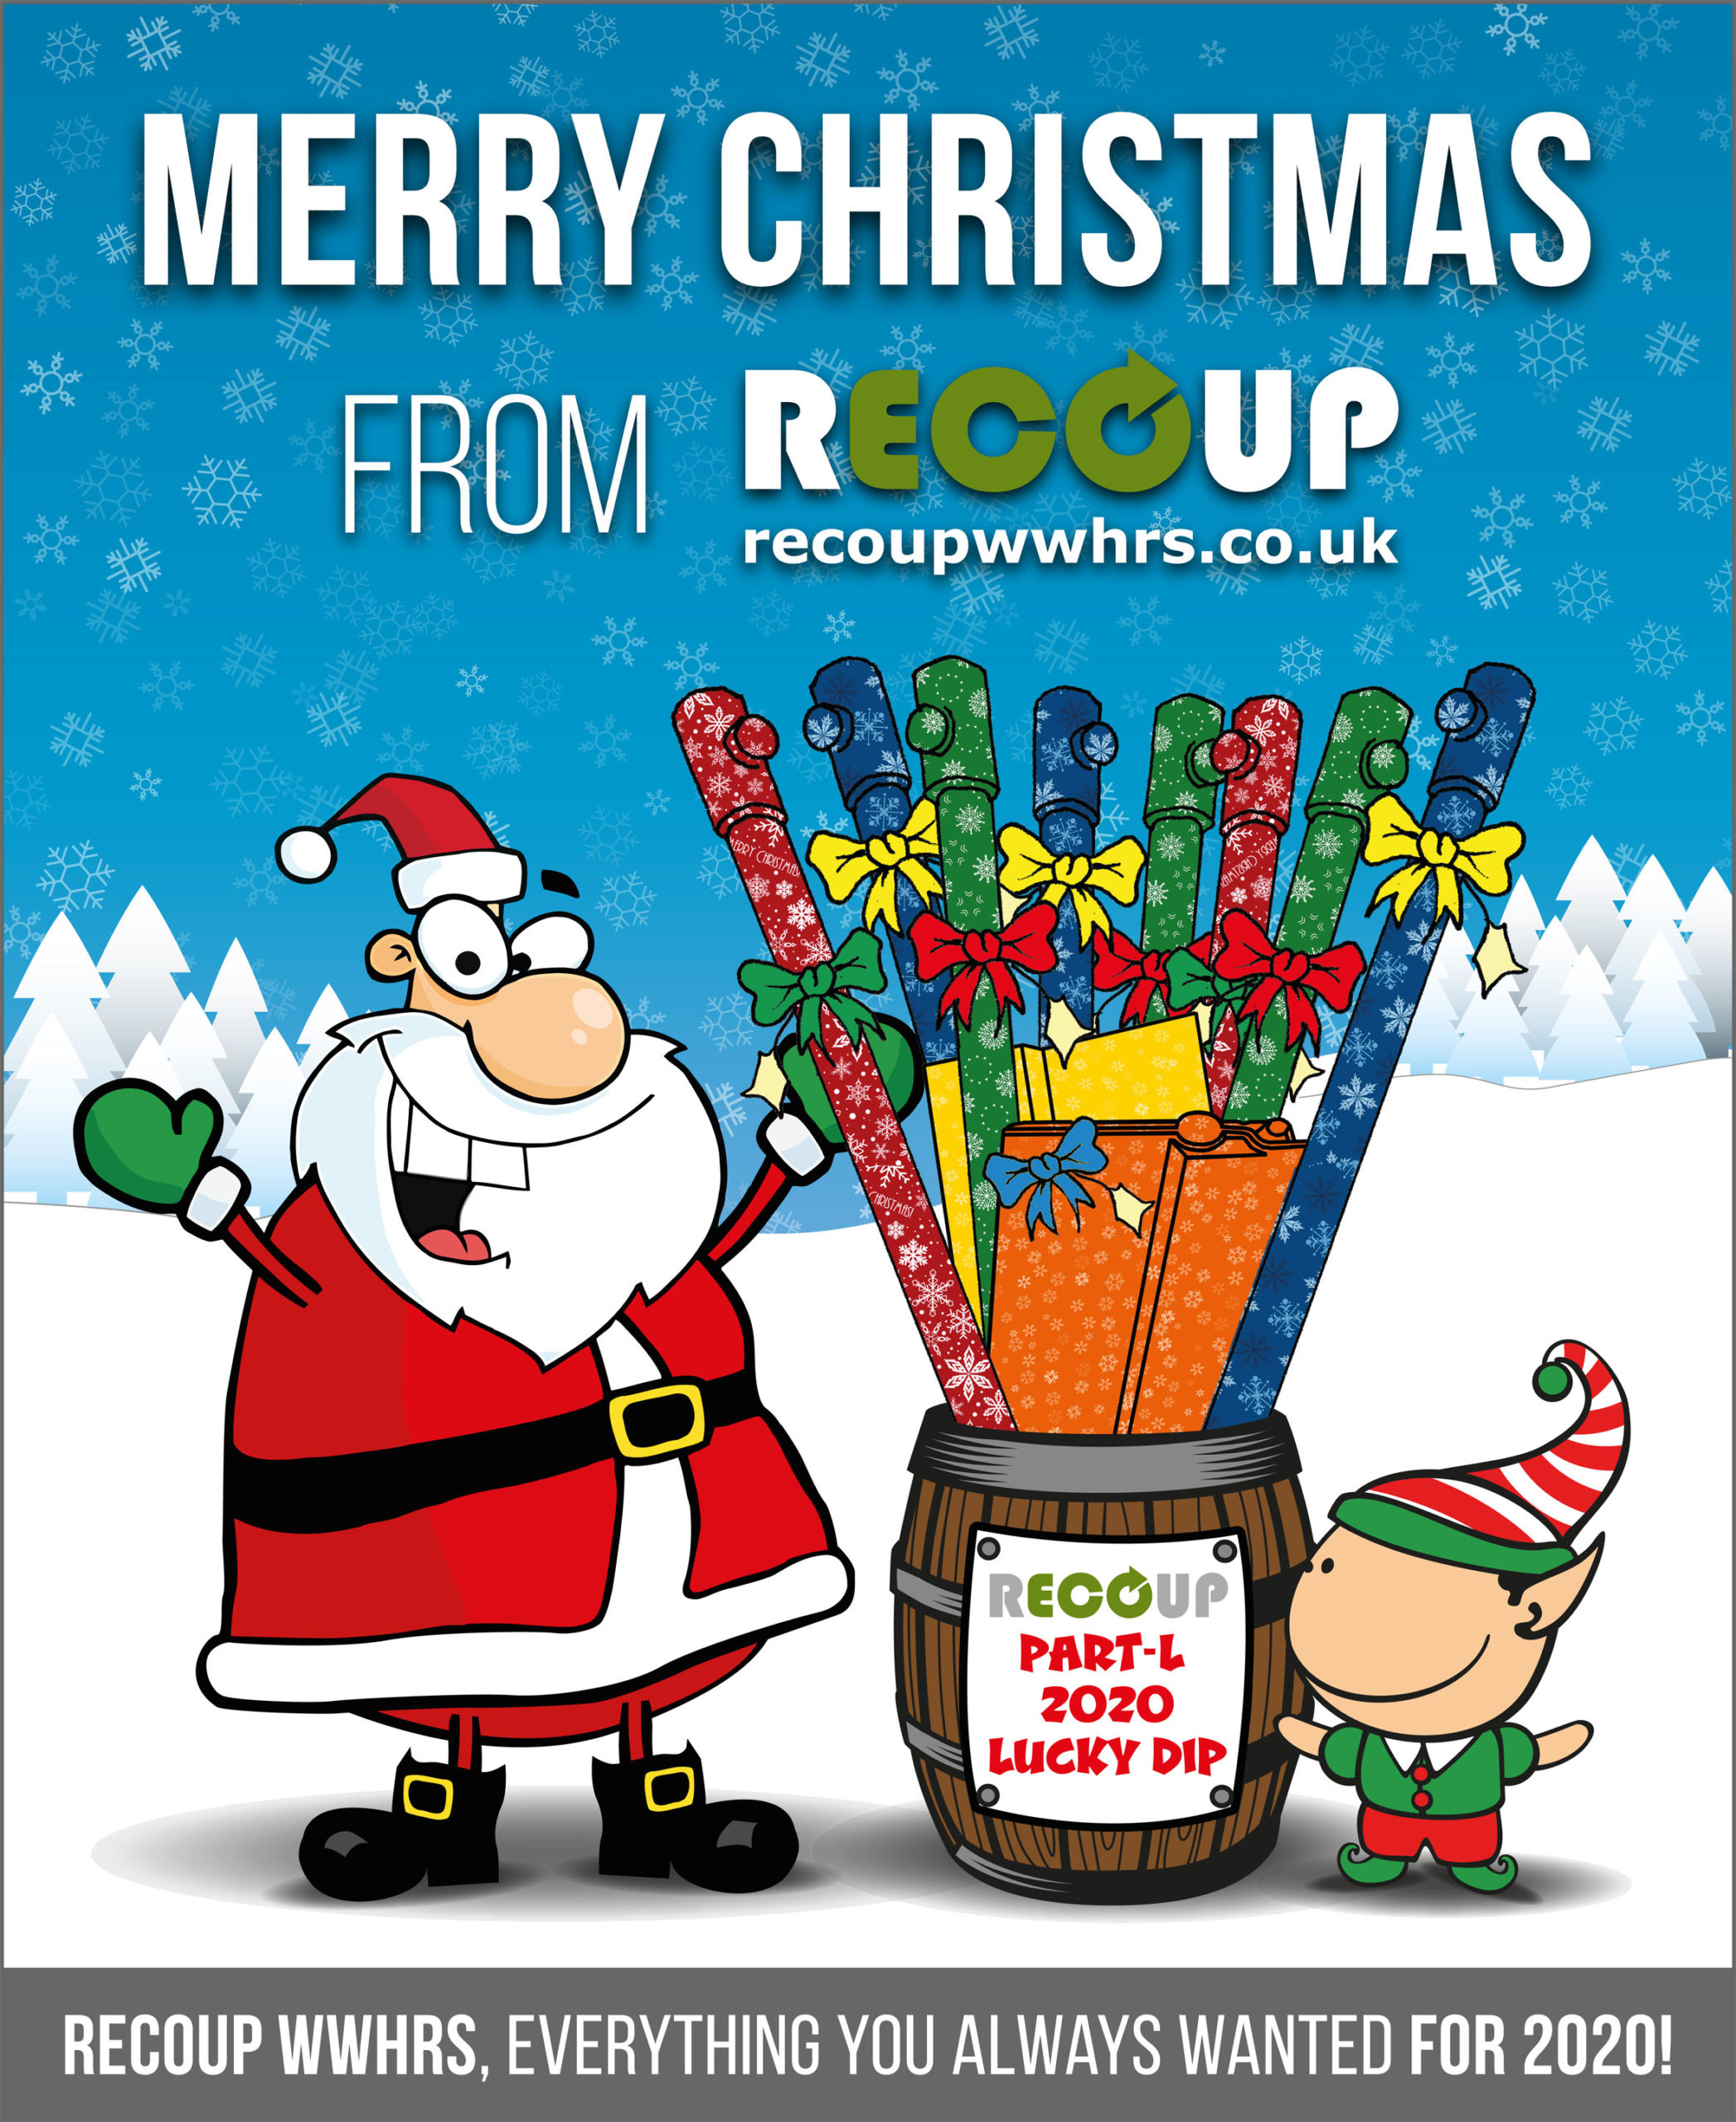 Merry Christmas and Happy New Year from Recoup WWHRS